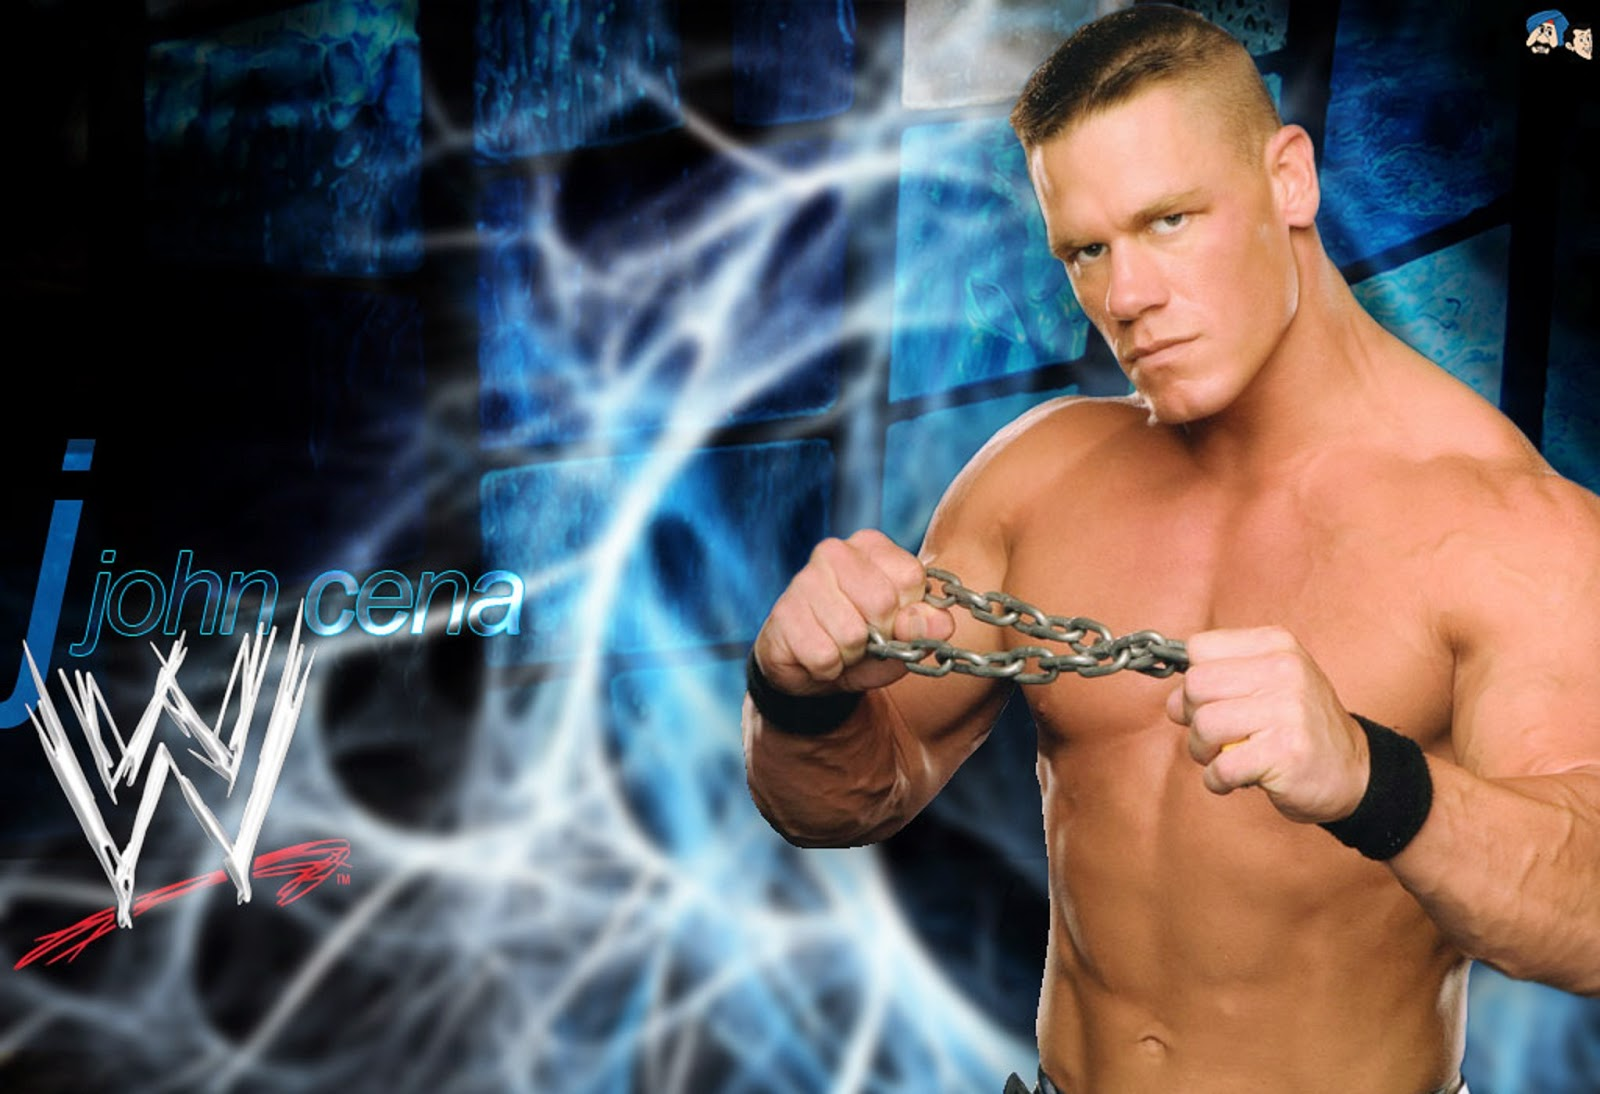 Tempest Reborn John Cena Hd Free Wallpapers